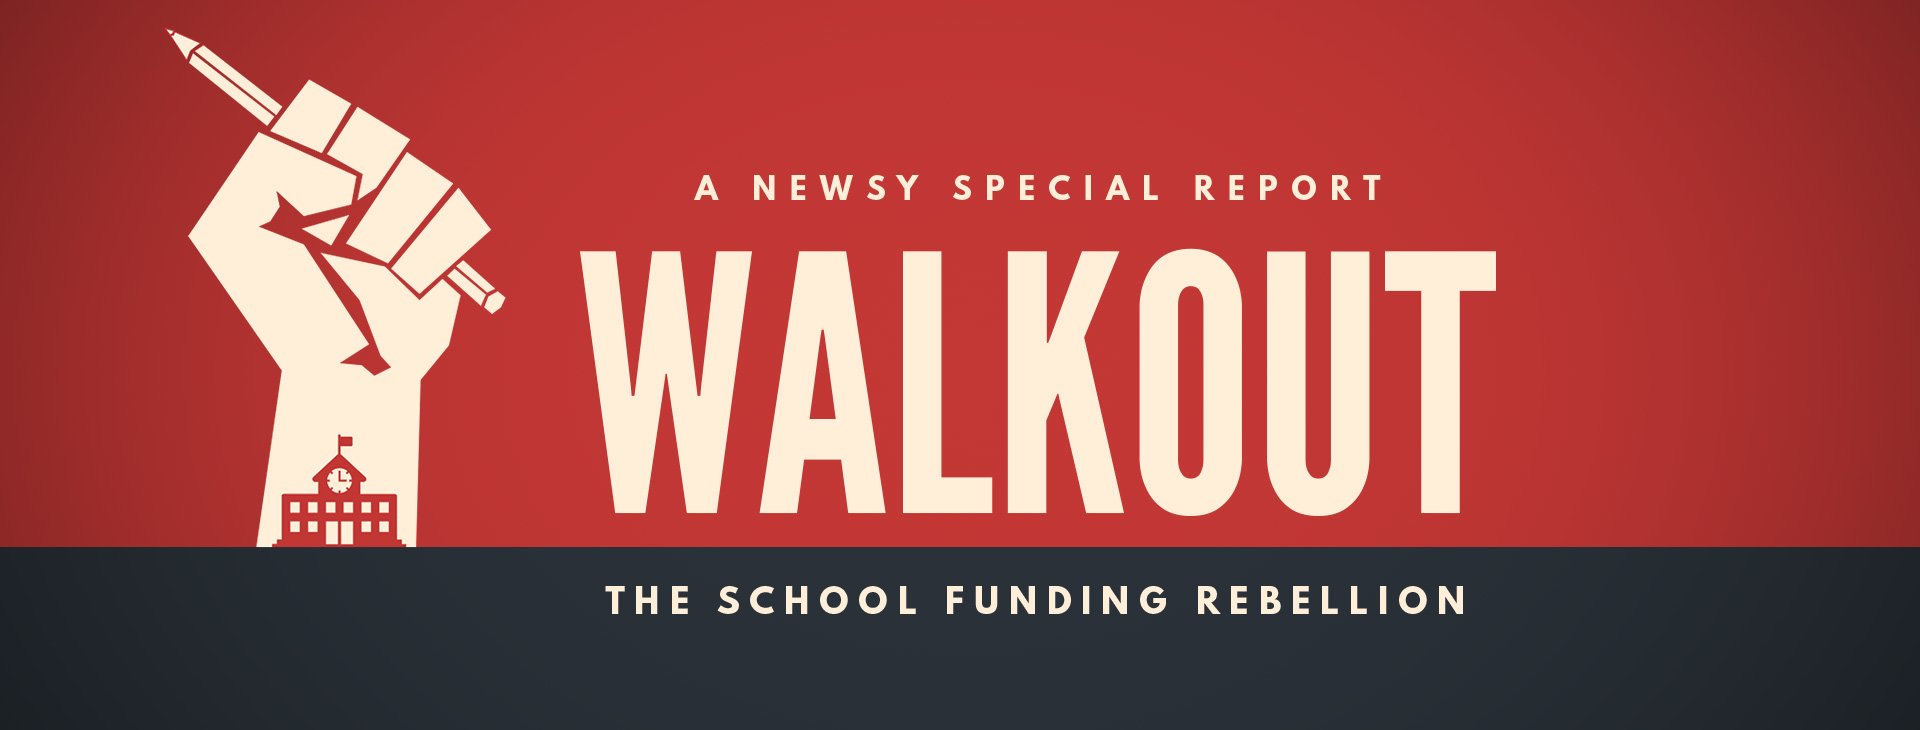 Walkout: The School Funding Rebellion